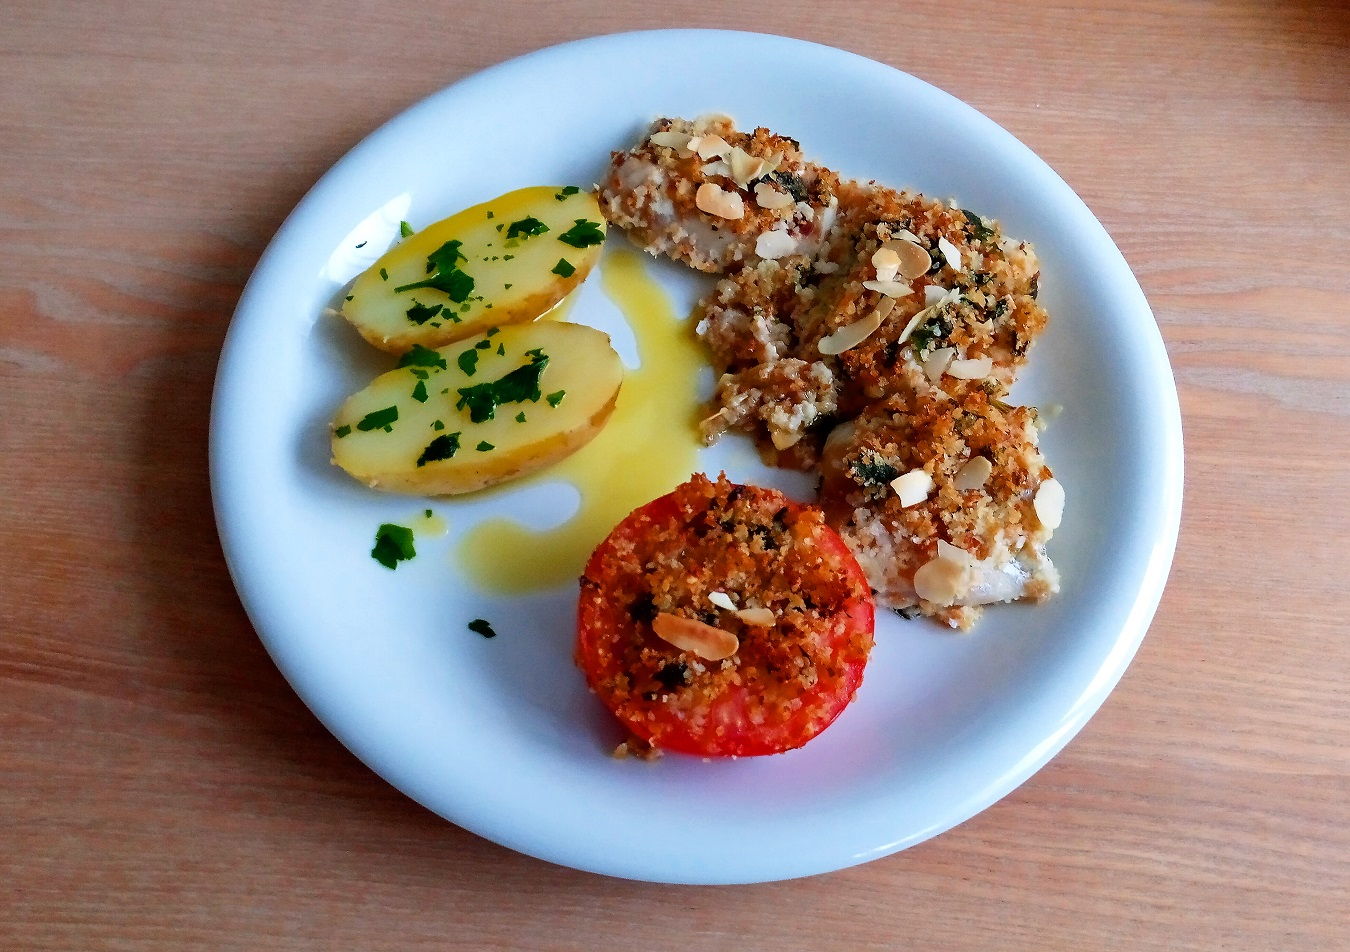 Baked cod with flavor breading